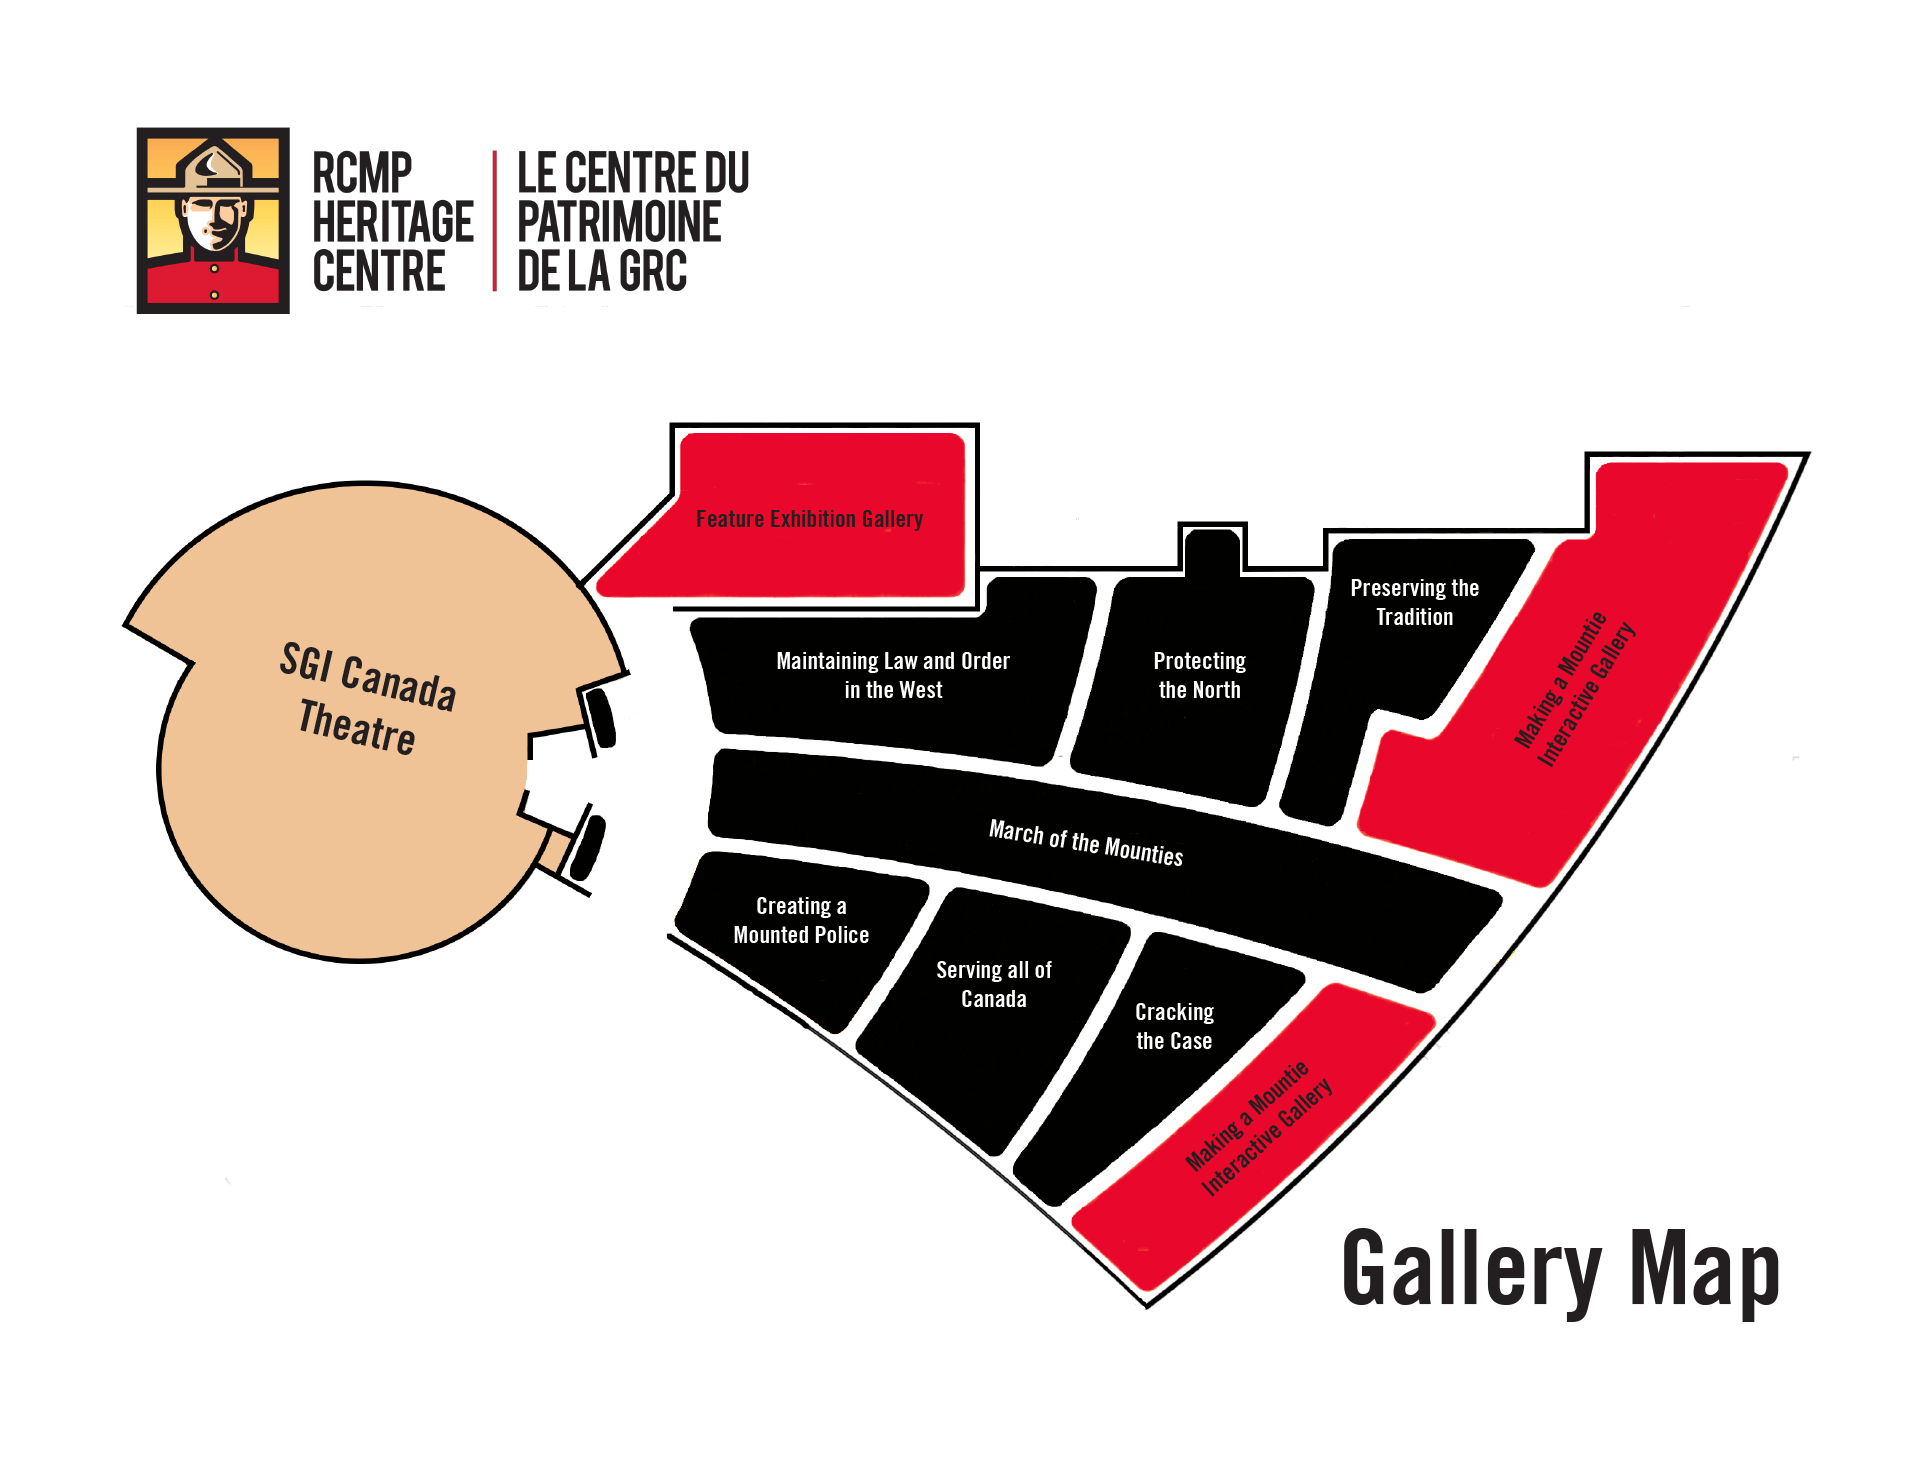 RCMPHC Gallery Map English